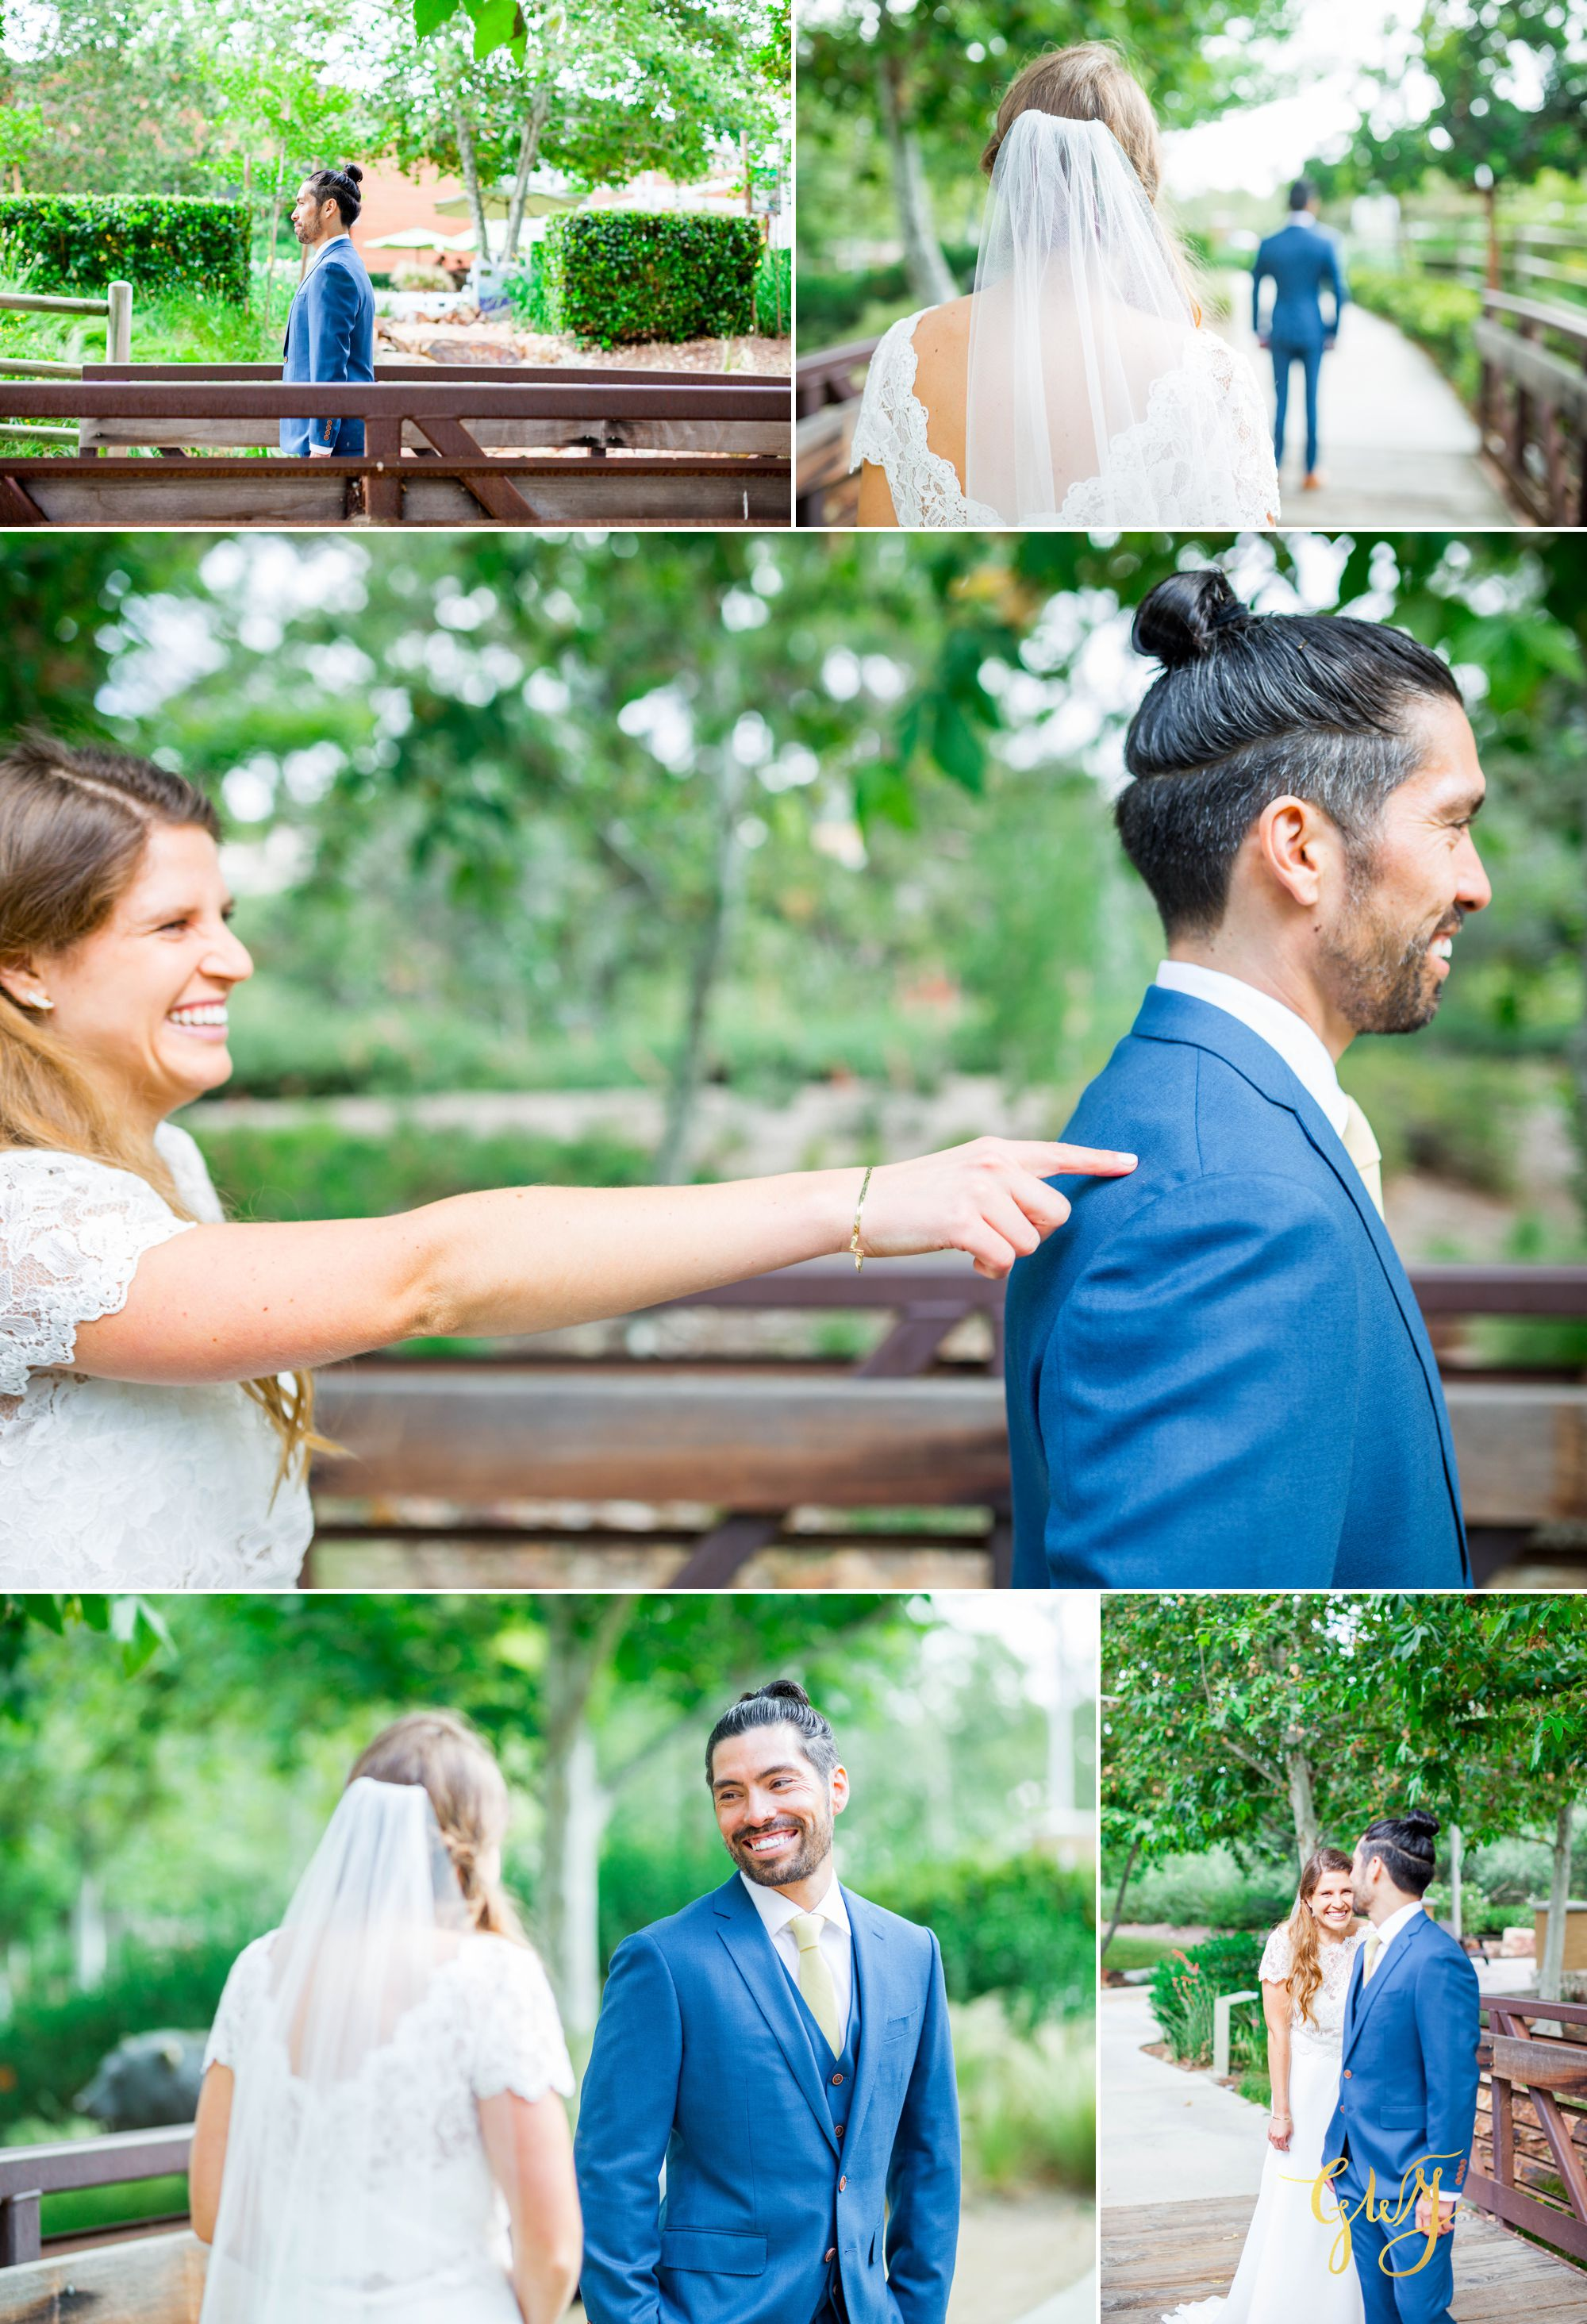 Jose + Sarah Norman P Murray Mission Viejo Summer Wedding by Glass Woods Media 12.jpg